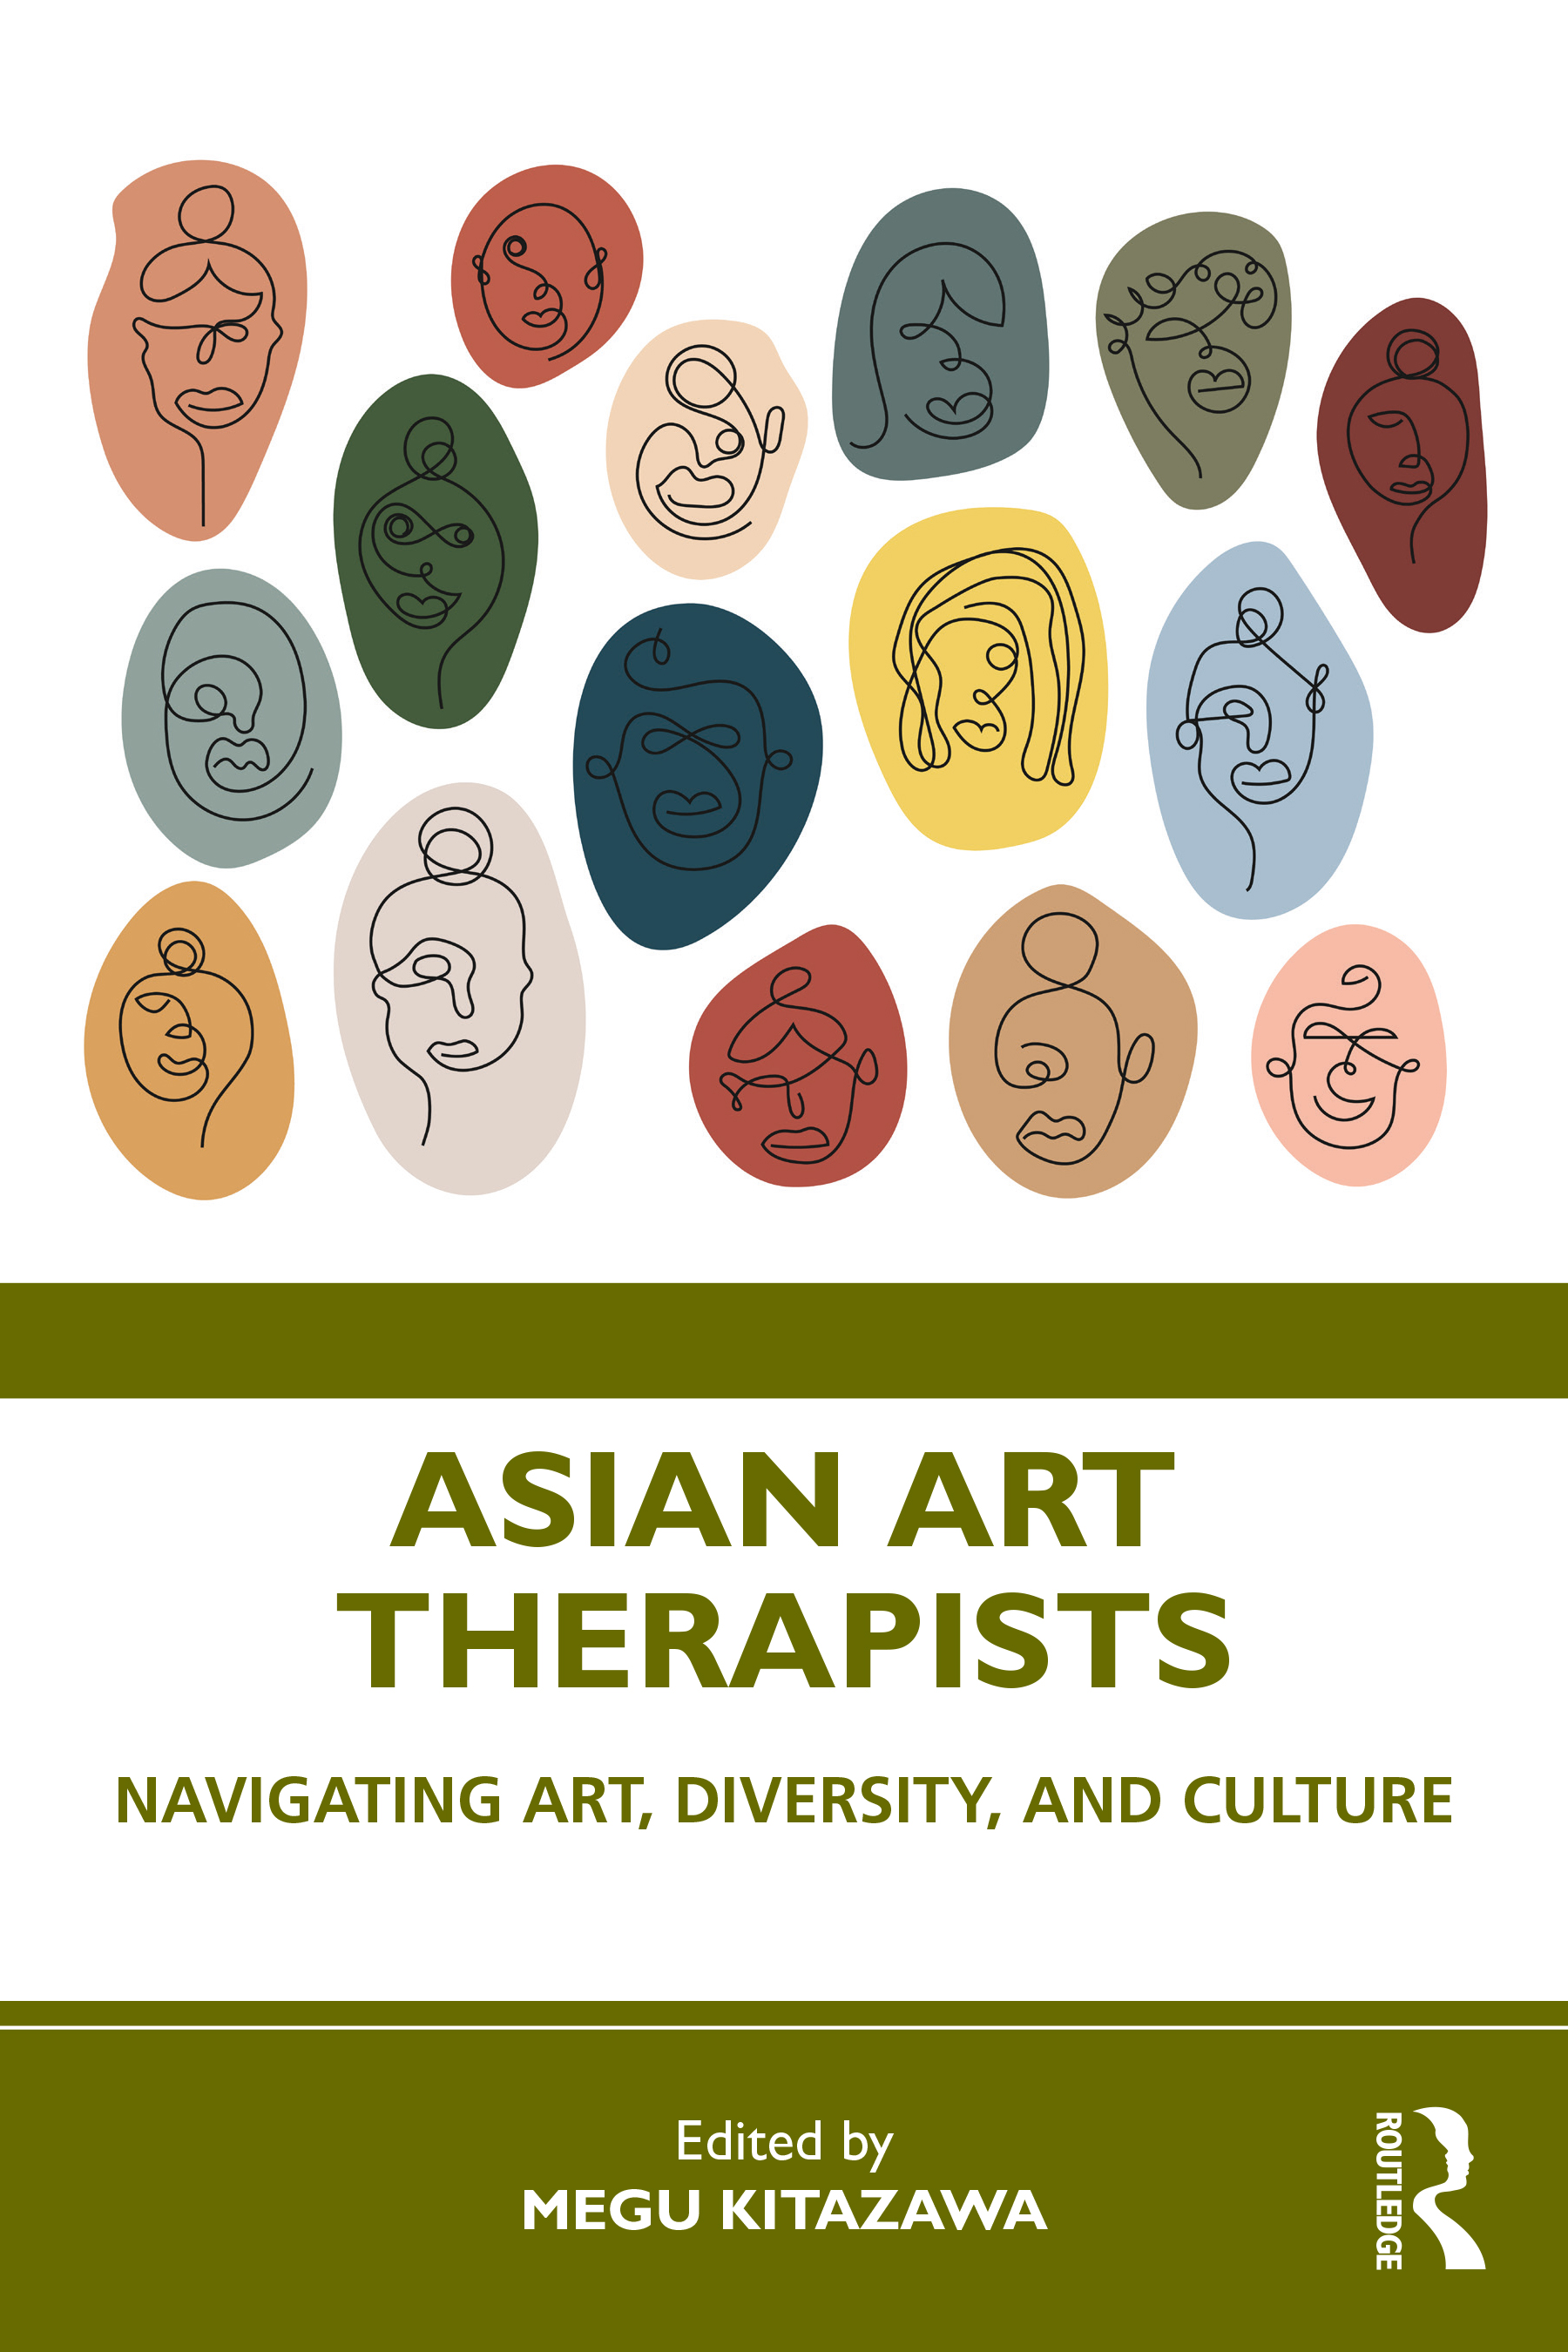 Interweaving Art, Therapy, and Cultural Diversity